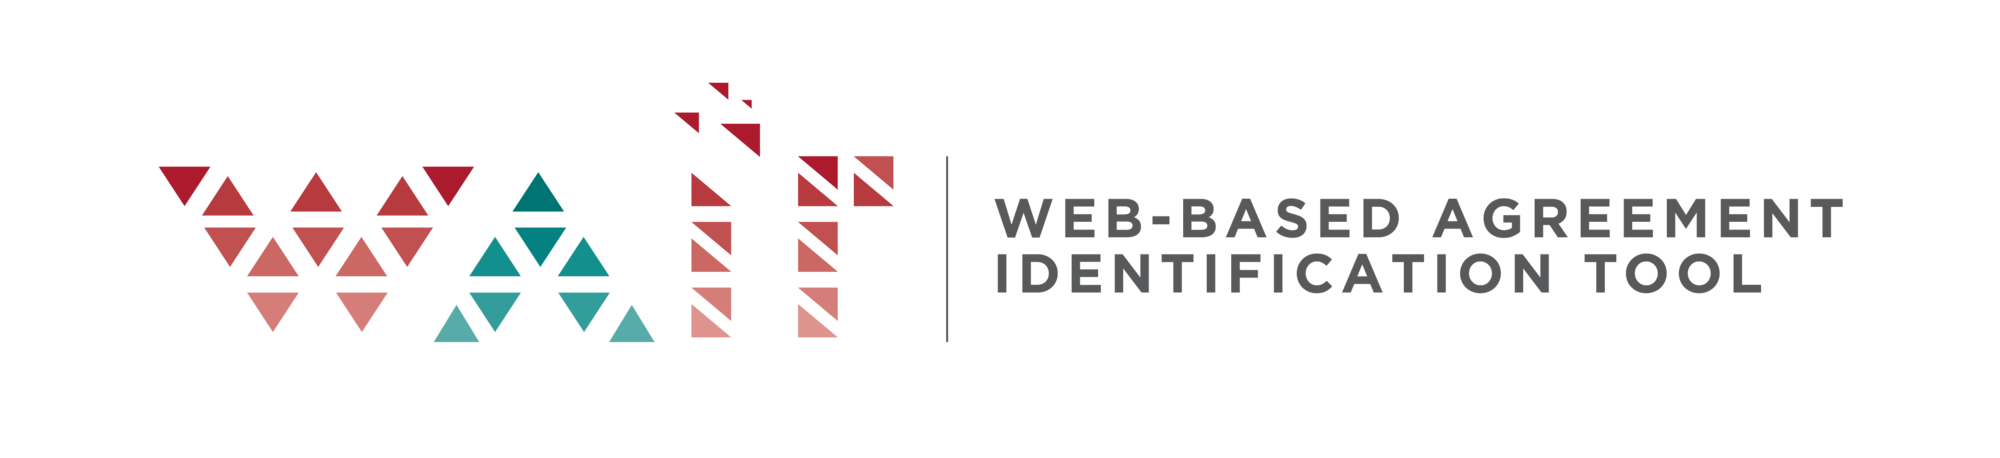 WAIT logo with text: Web-based Agreement Identification Tool.